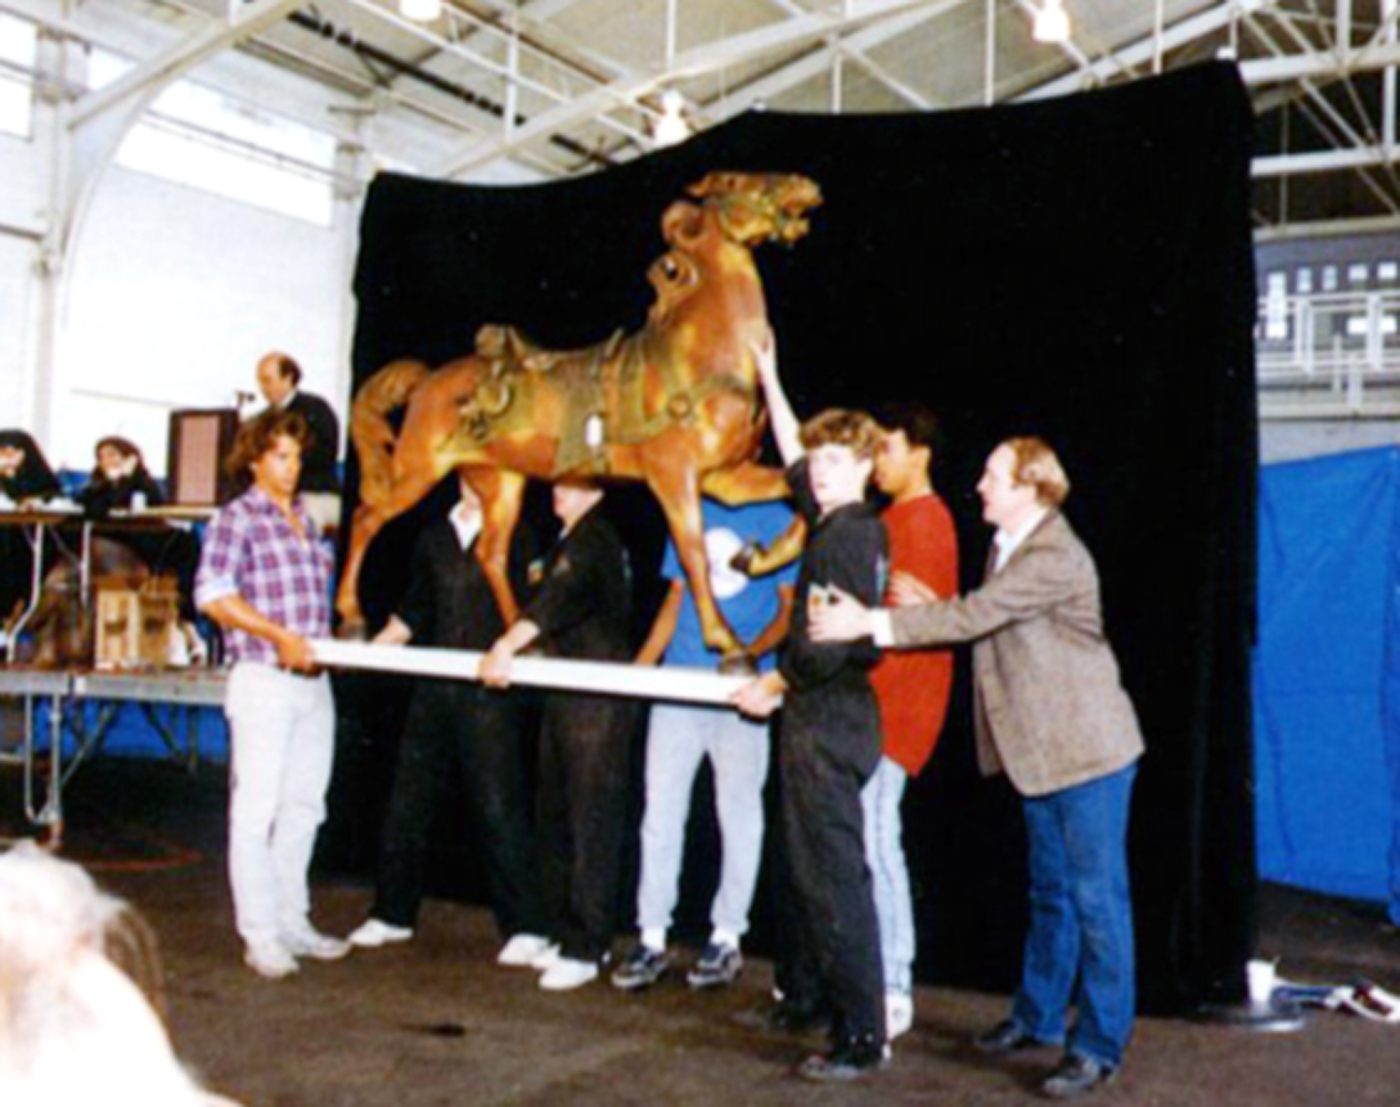 Am-Carousel-Museum-1991-Rock-Springs-Muller-auction